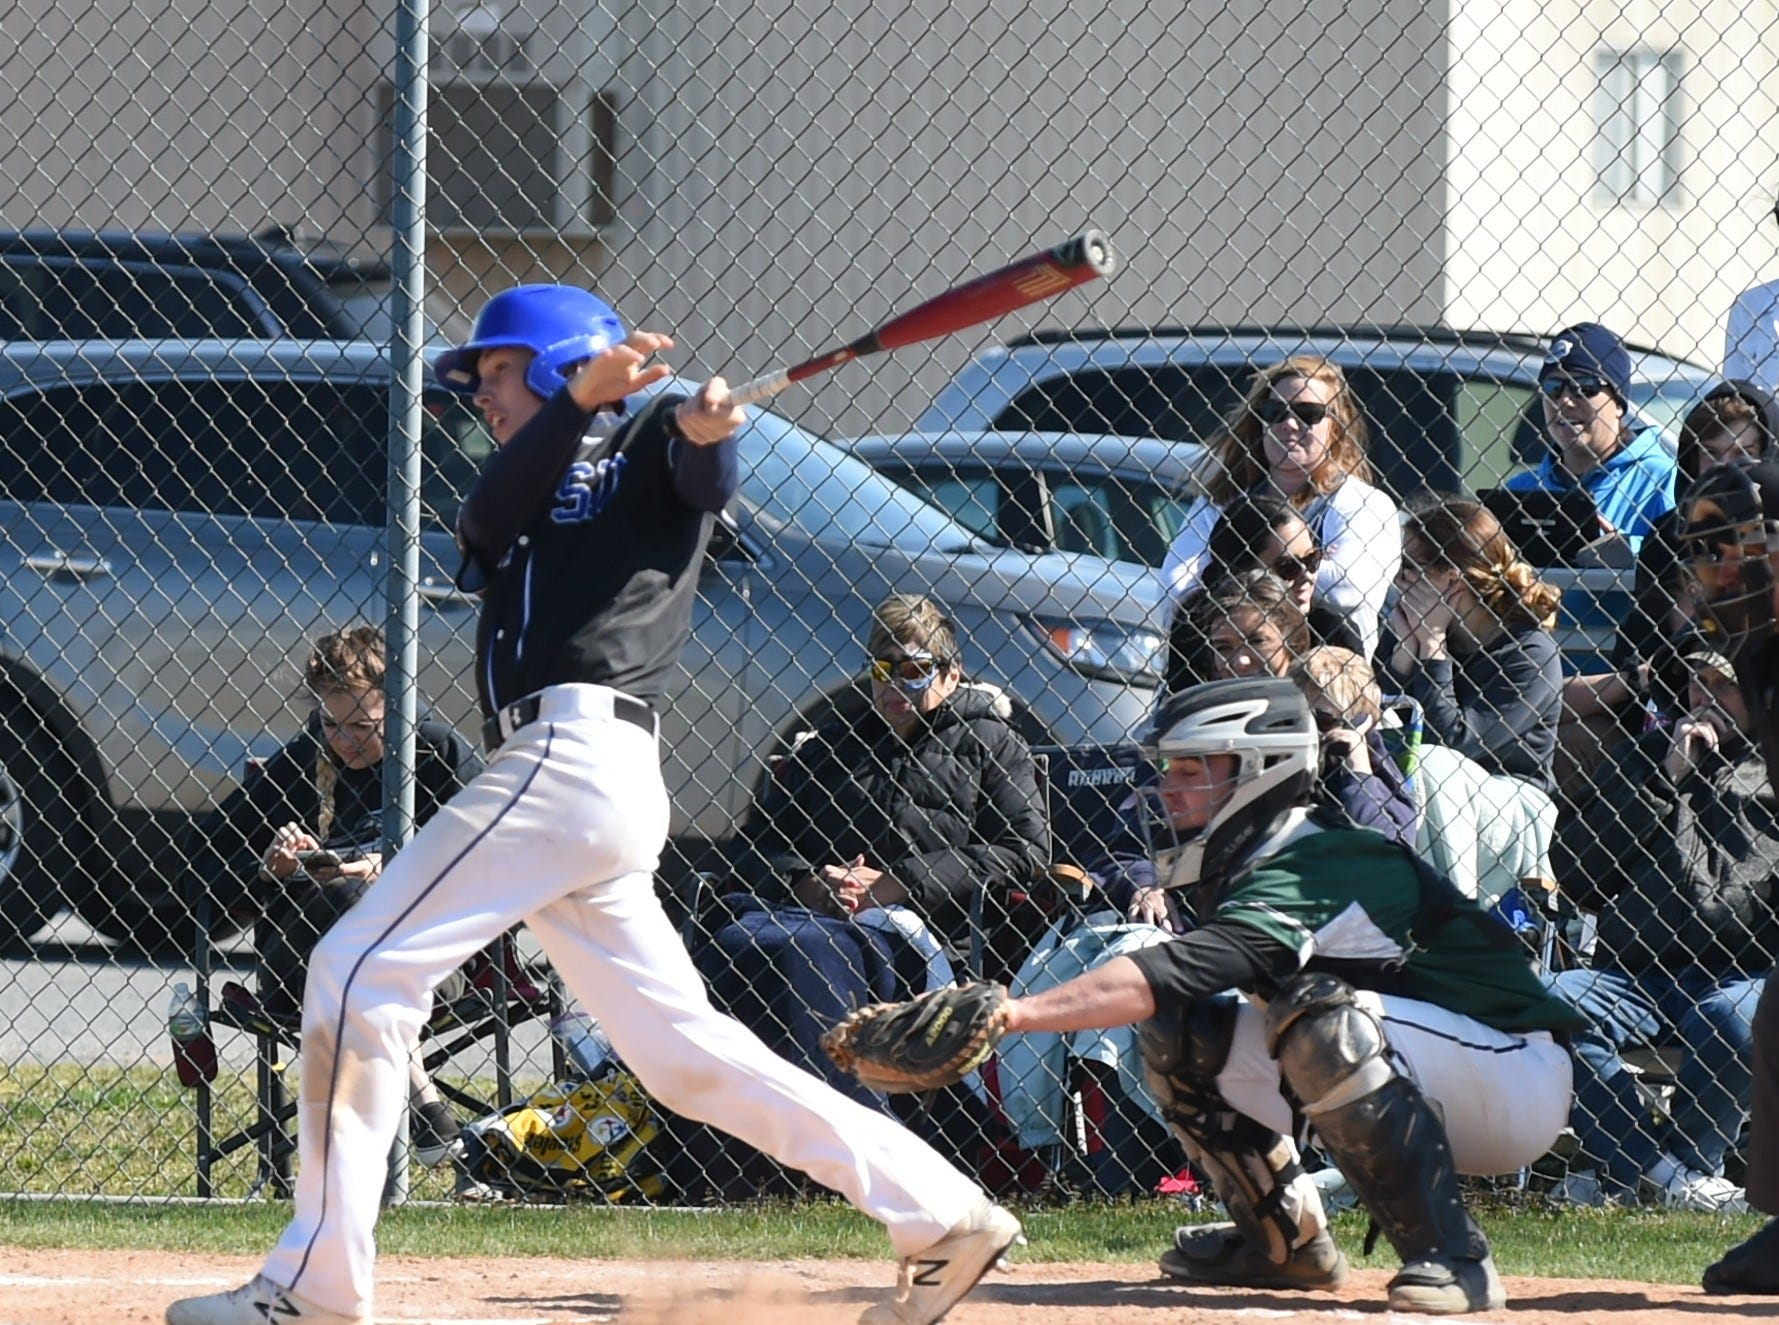 Stephen Decatur's Hunter Selzer hits a double against Parkside on Wednesday, April 3, 2019.